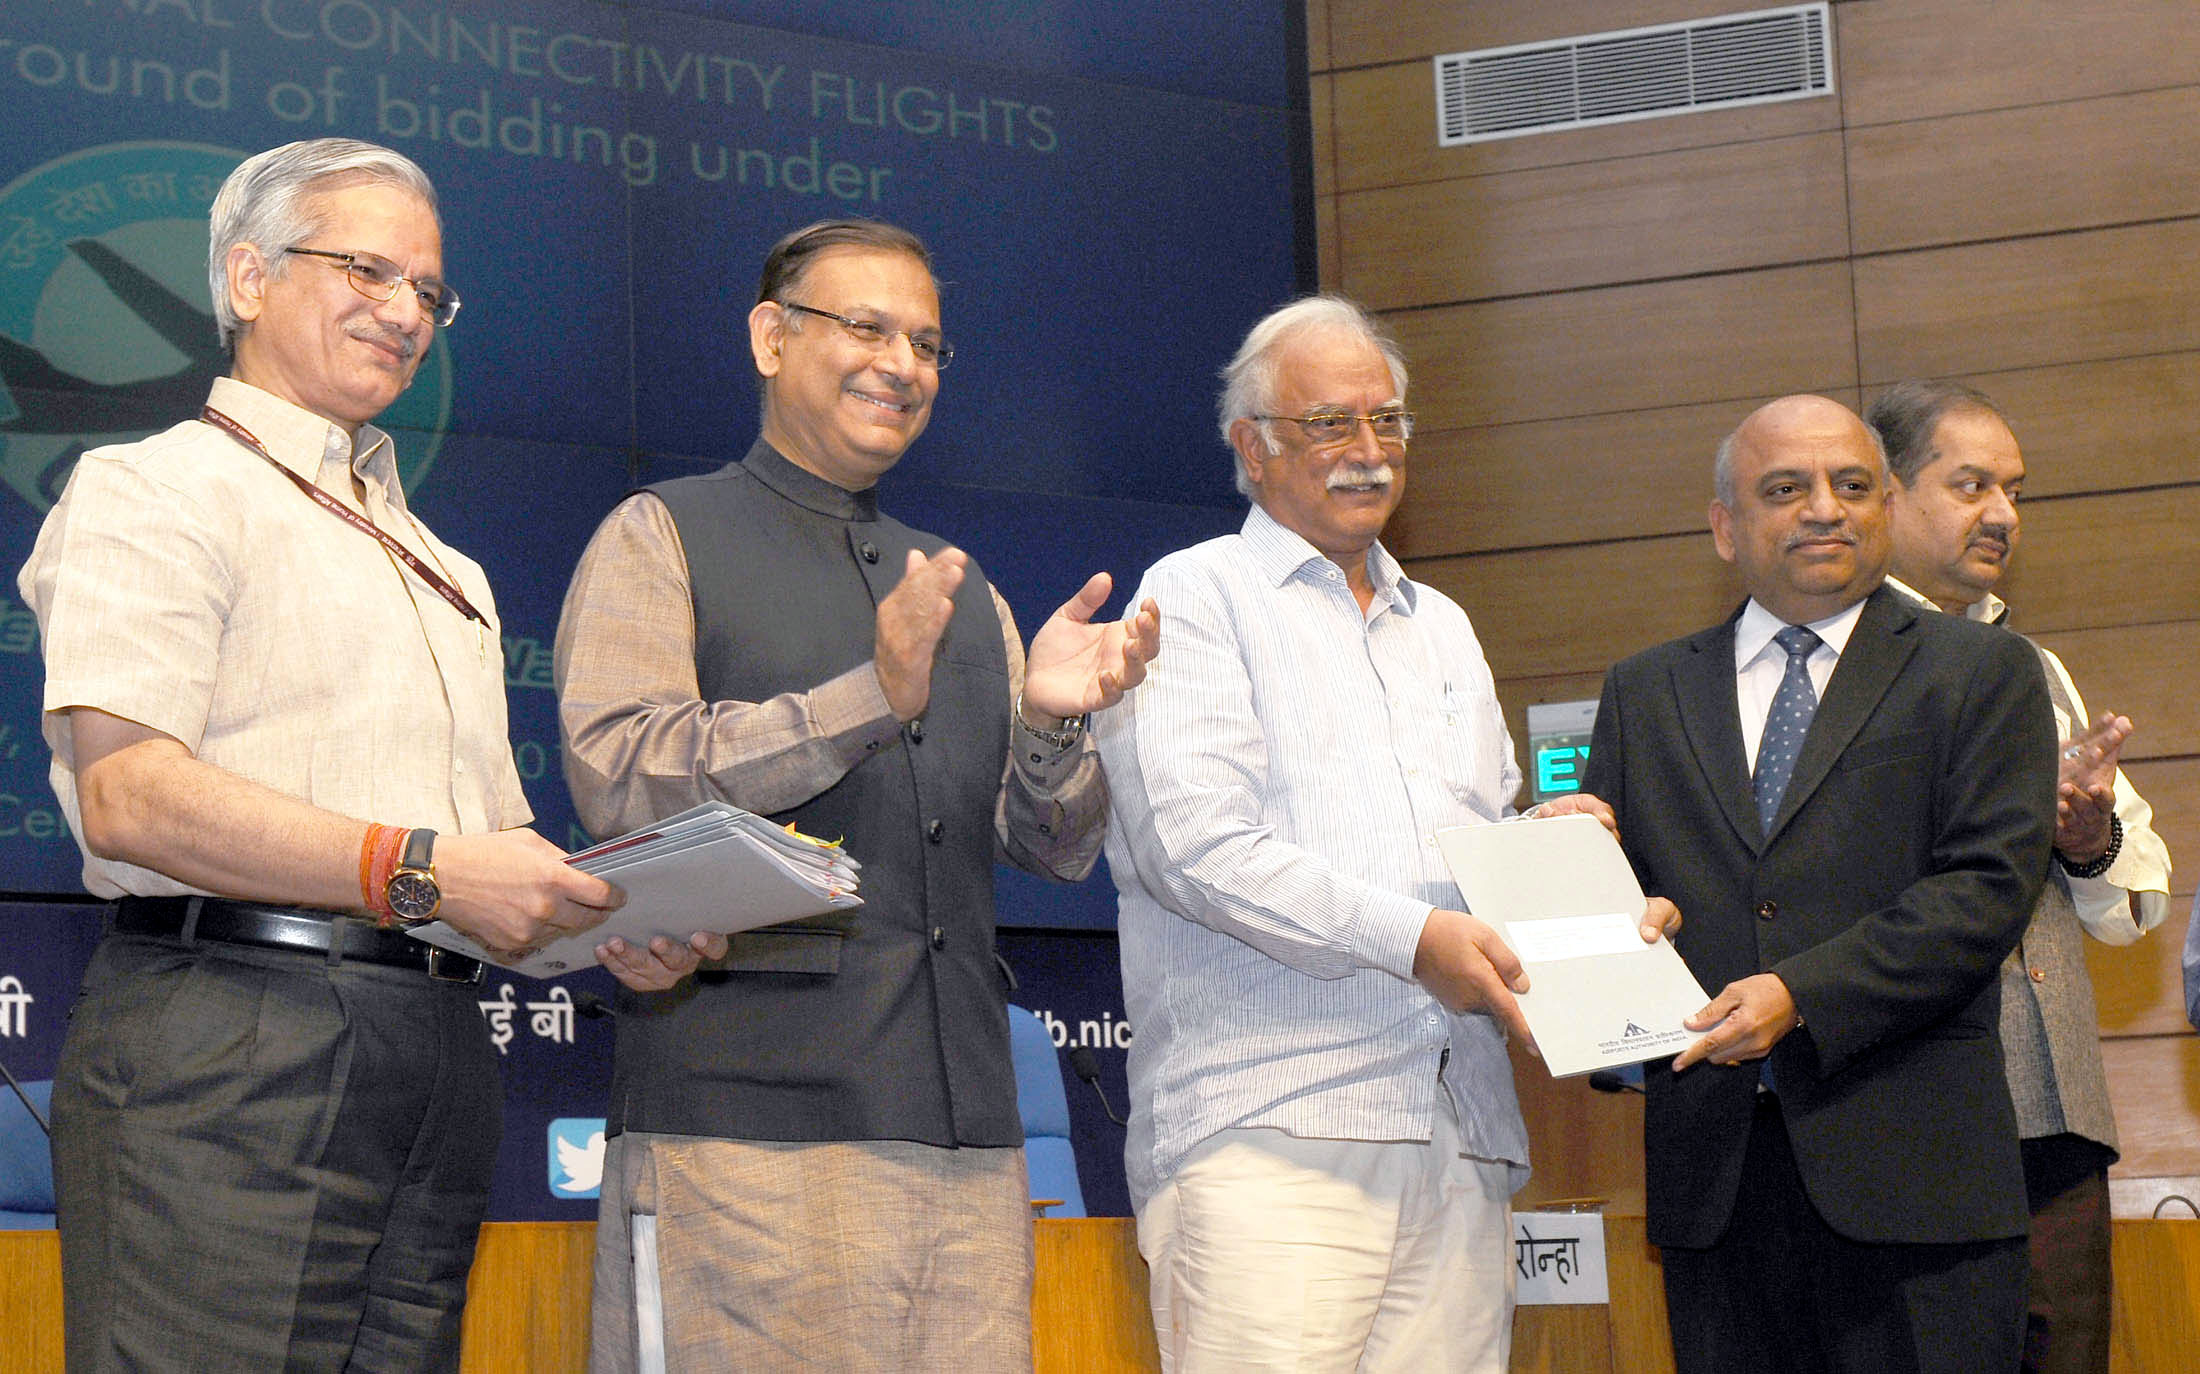 Minister of State for Civil Aviation Jayant Sinha(2nd right) Minister for Civil Aviation Ashok Gajapathi Raju Pusapati at awards ceremony for Regional Connectivity Flight routes after first round of bidding. (Photo: PIB)